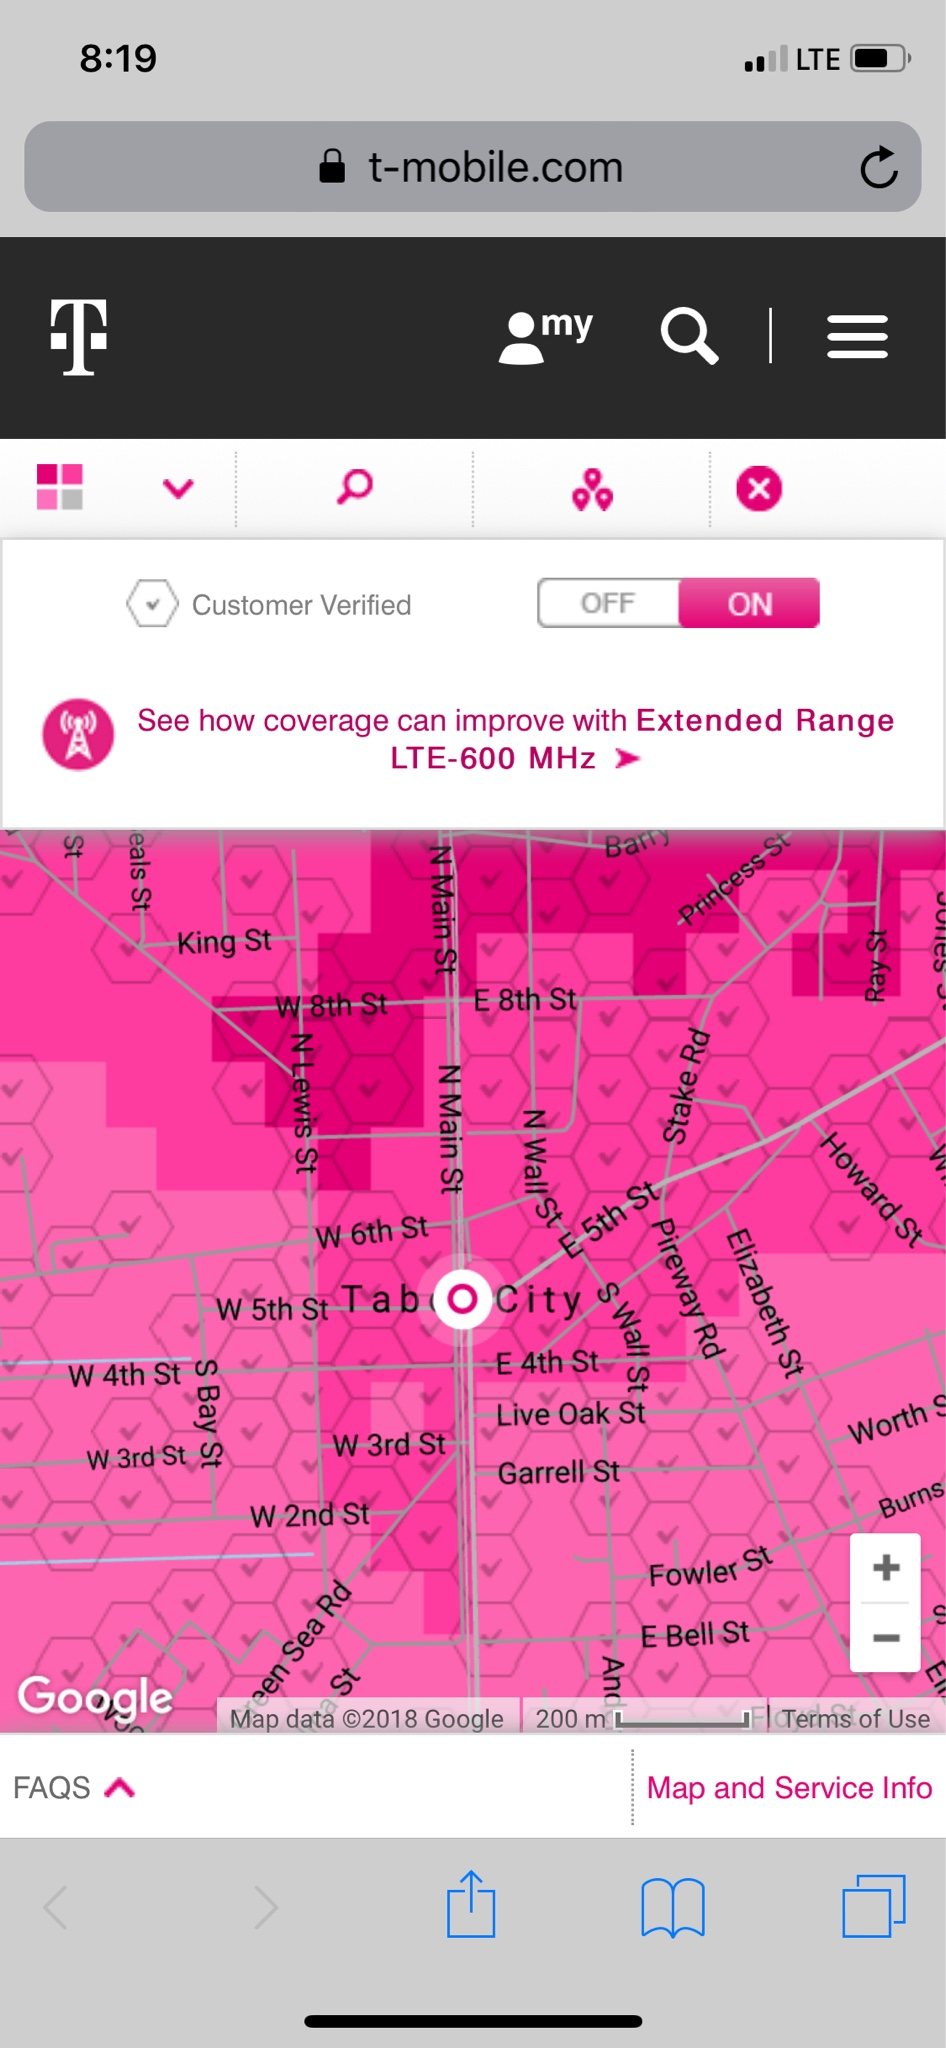 Tabor City Nc Map.T Mobile Tabor City Nc 600 Mhz Test